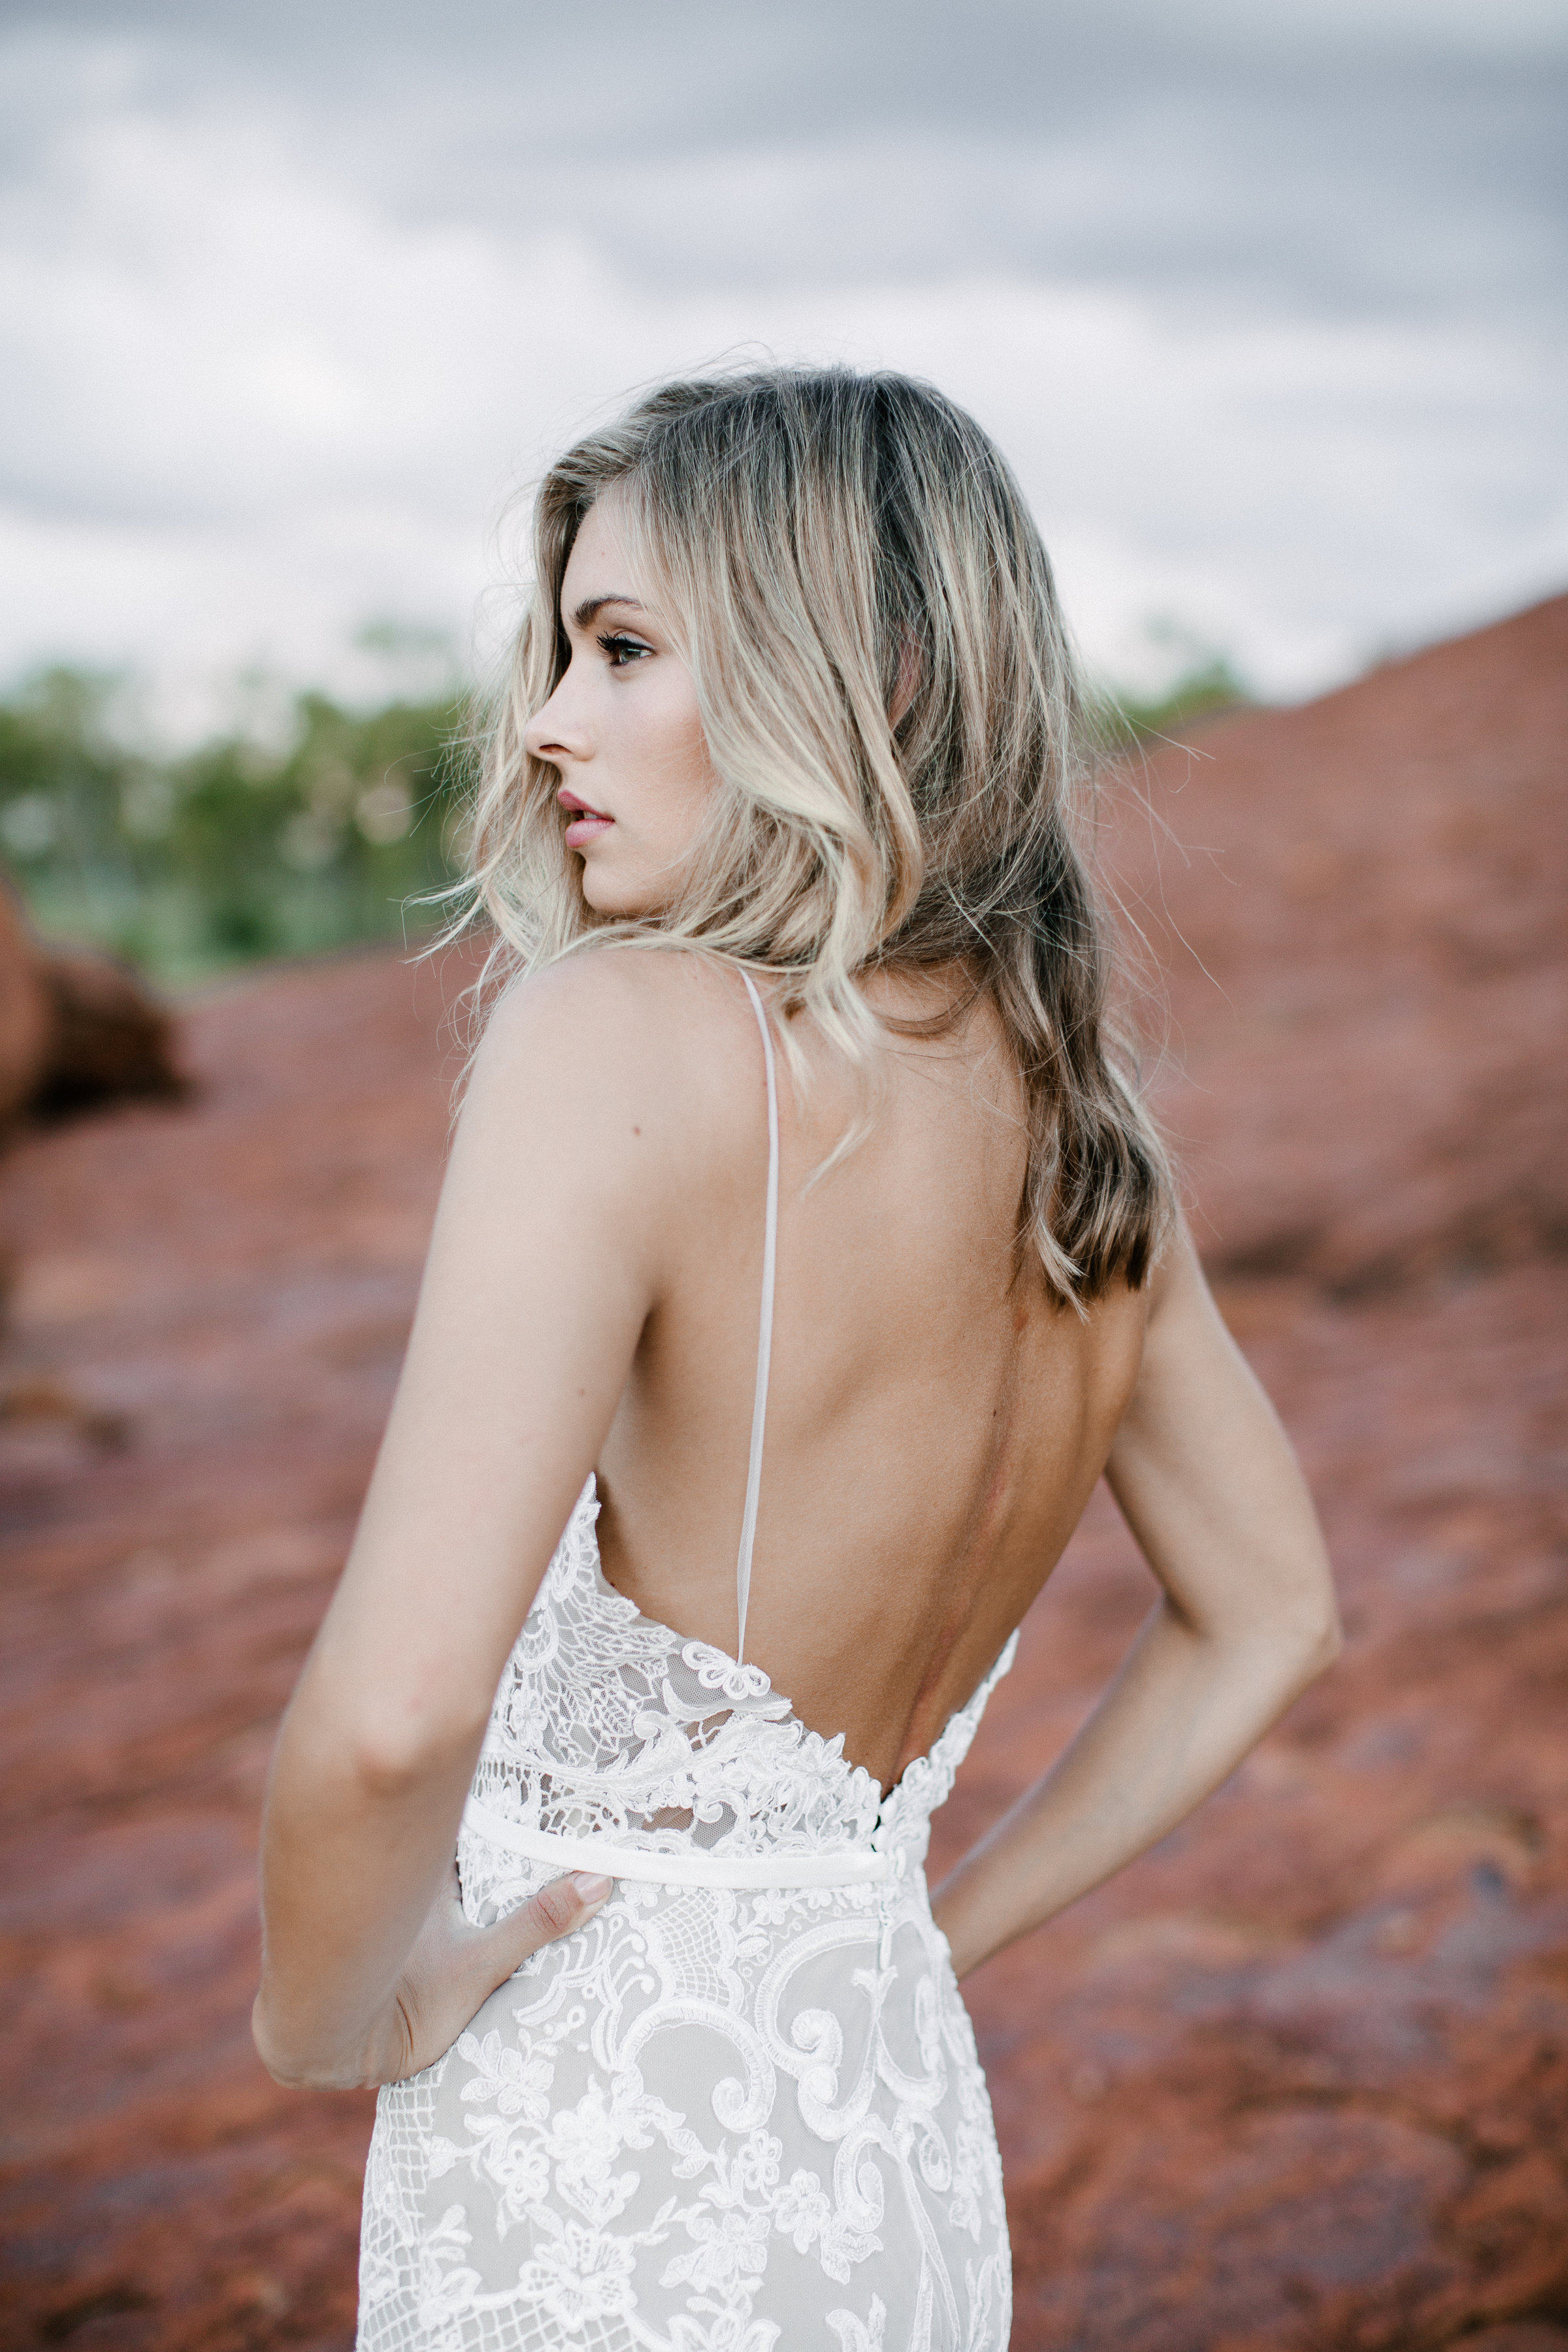 gold coast bridal wear, boho wedding dresses, gold coast wedding dresses, bohemian wedding dress, gold coast tipis, made with love bridal